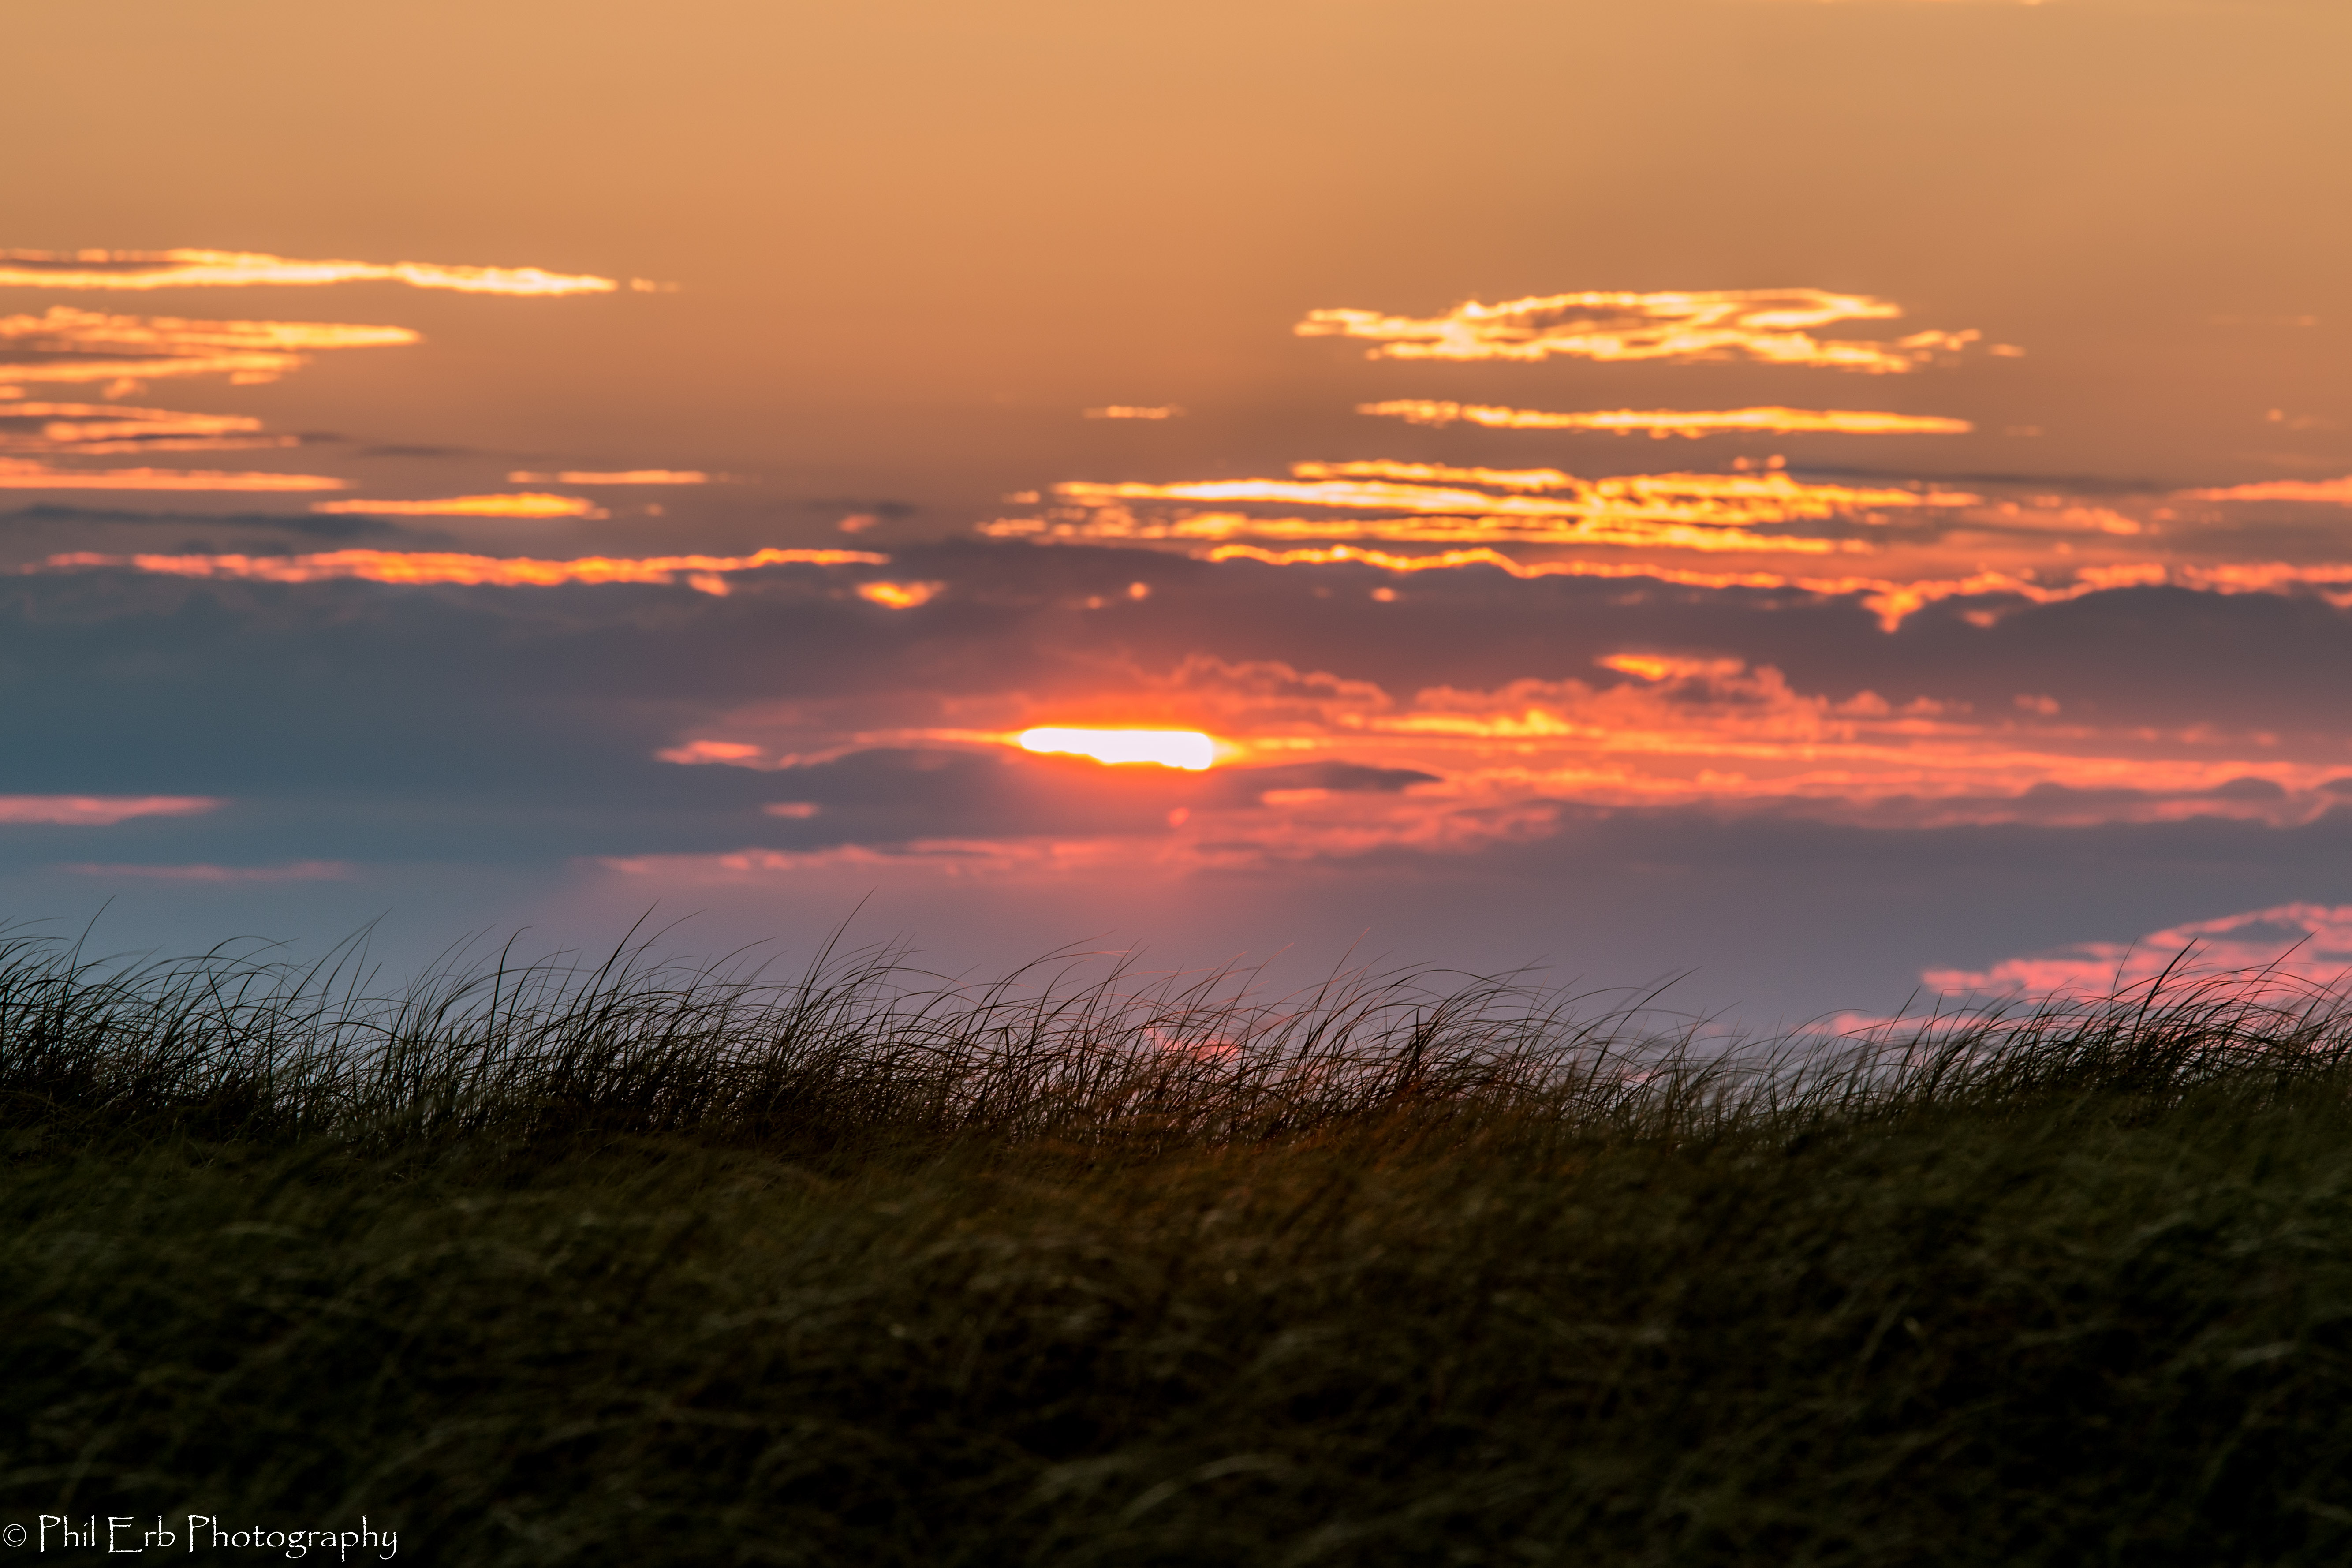 Sunset From Darnley Pei Phil Erb Photography